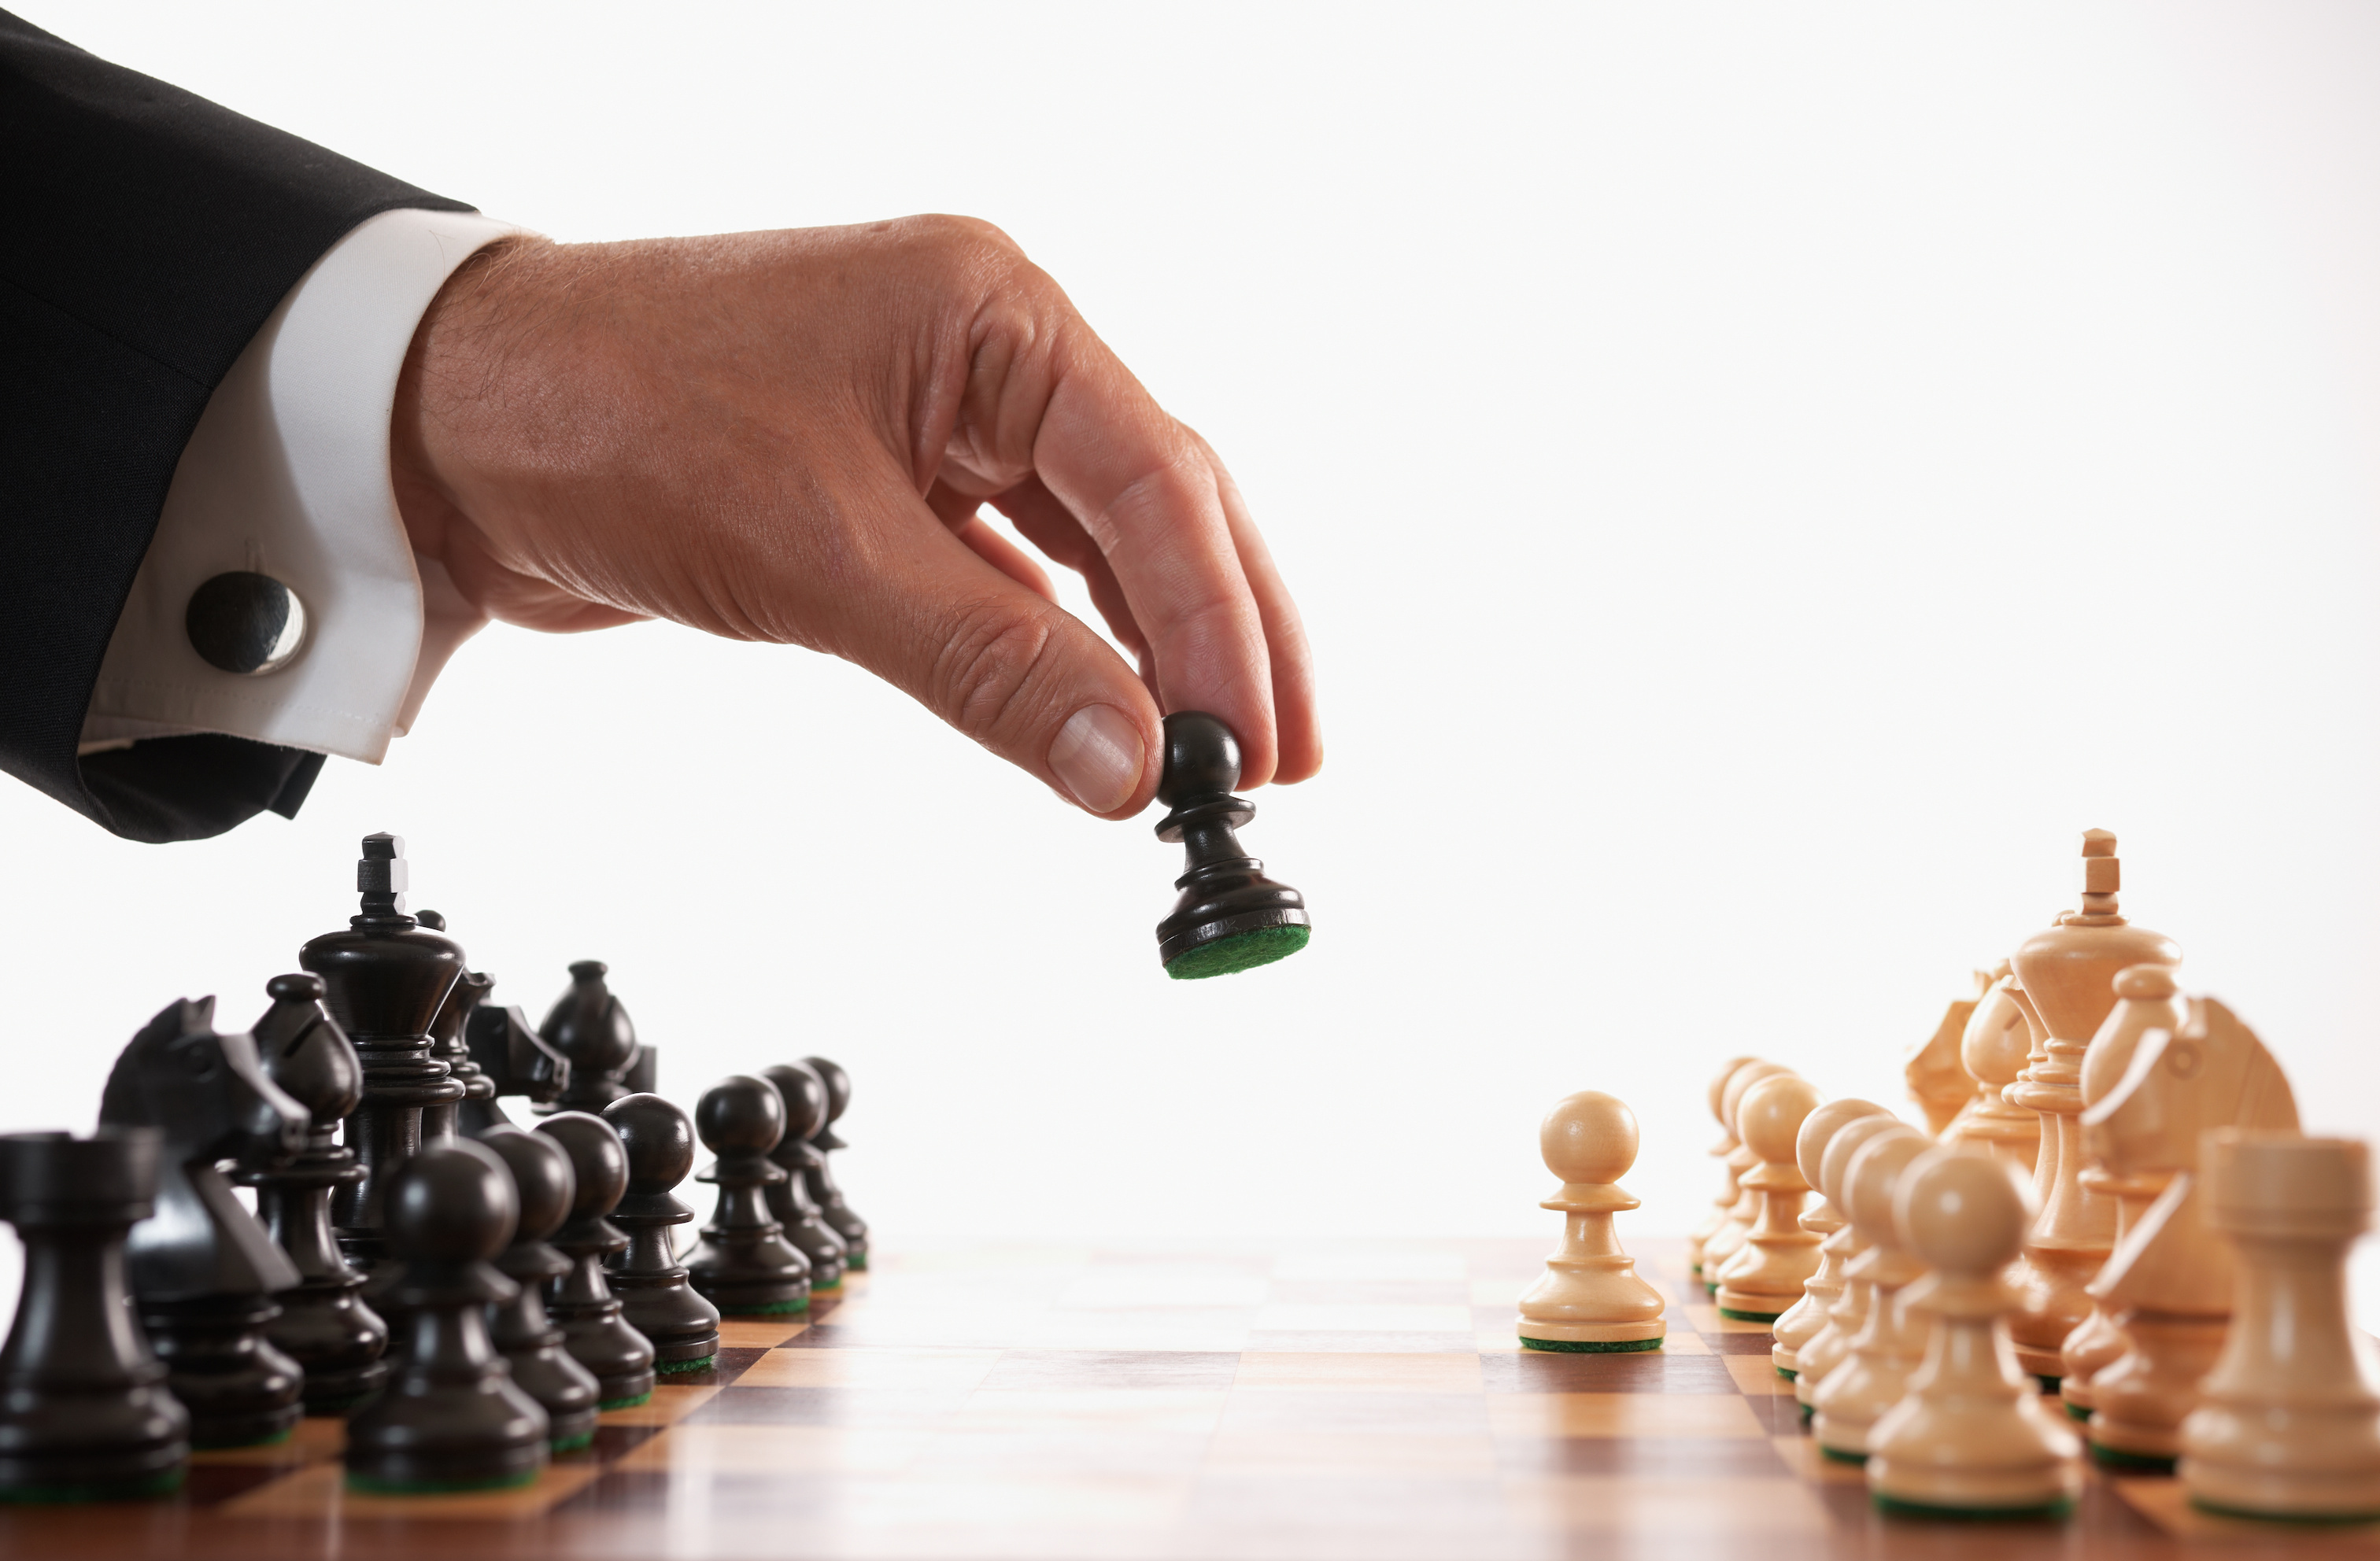 Lessons From a For-Profit: Strategic Planning